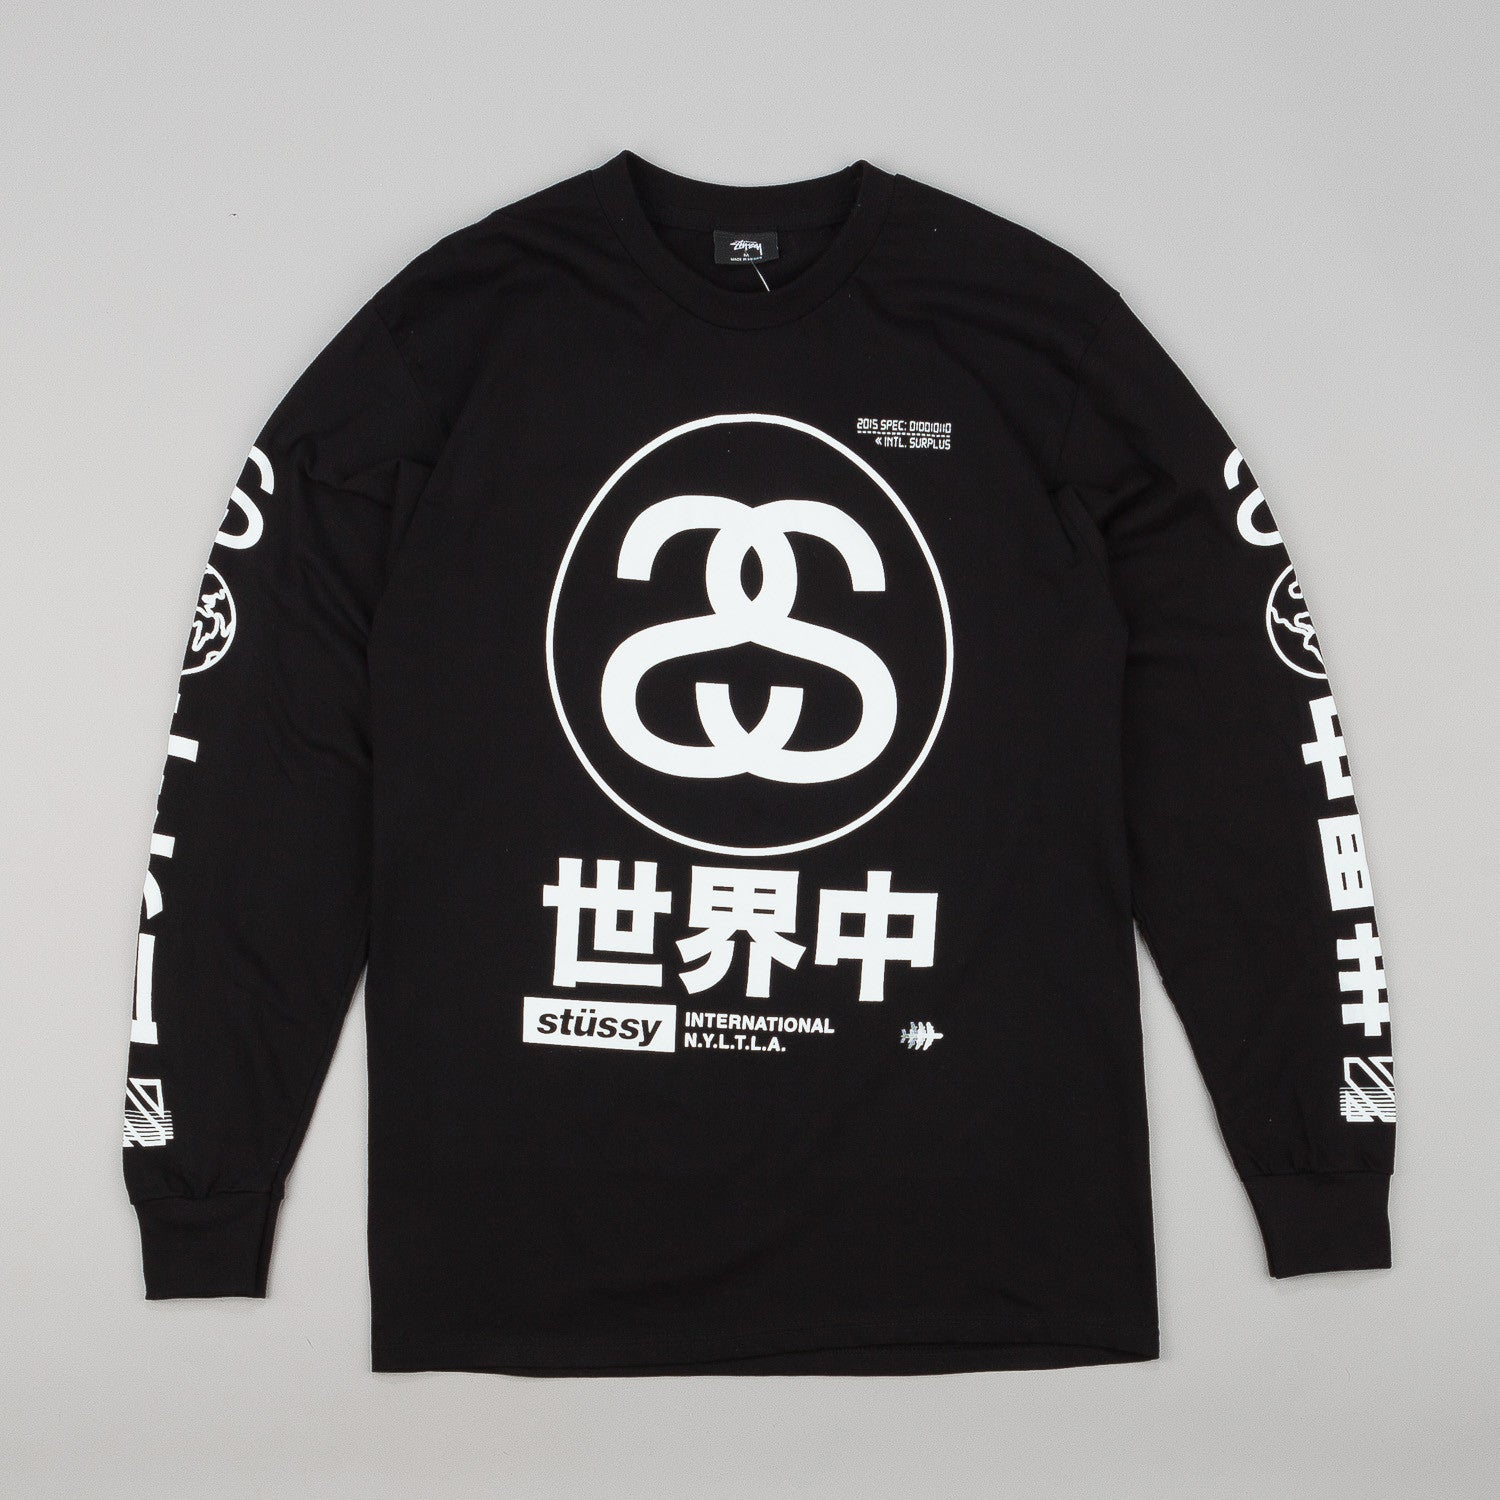 Stussy Japan International L/S T-Shirt